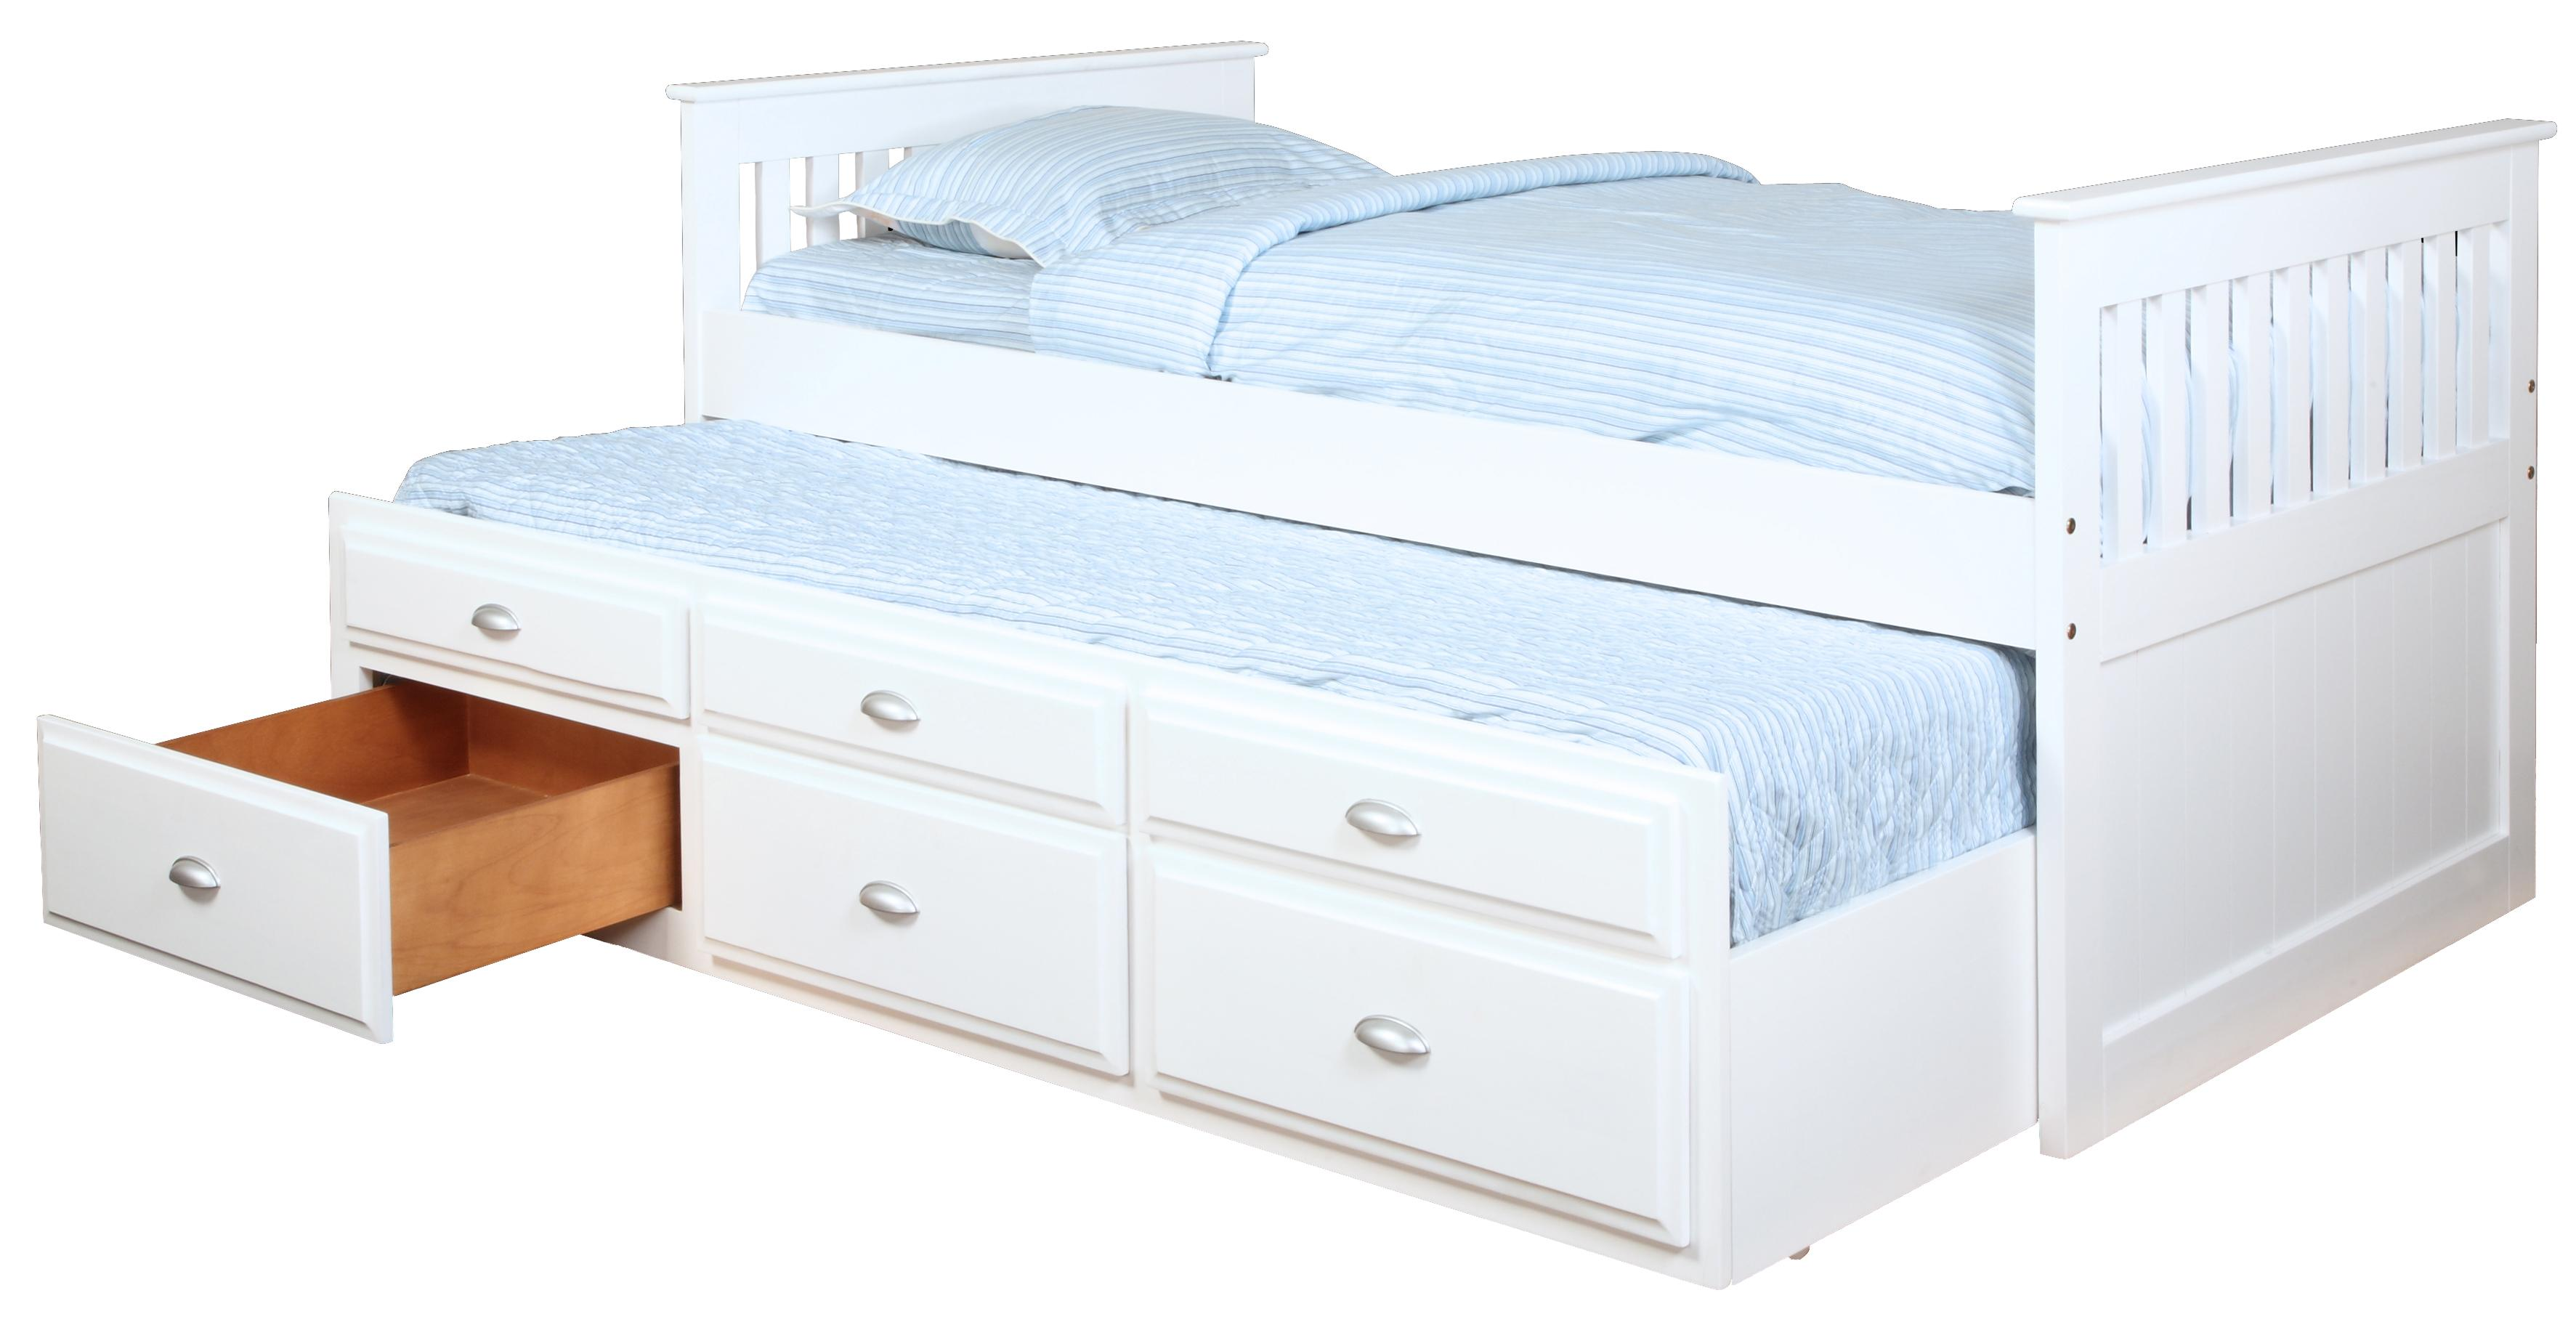 Bernards Logan Captain's Bed with Trundle and Storage - Item Number: 3042V